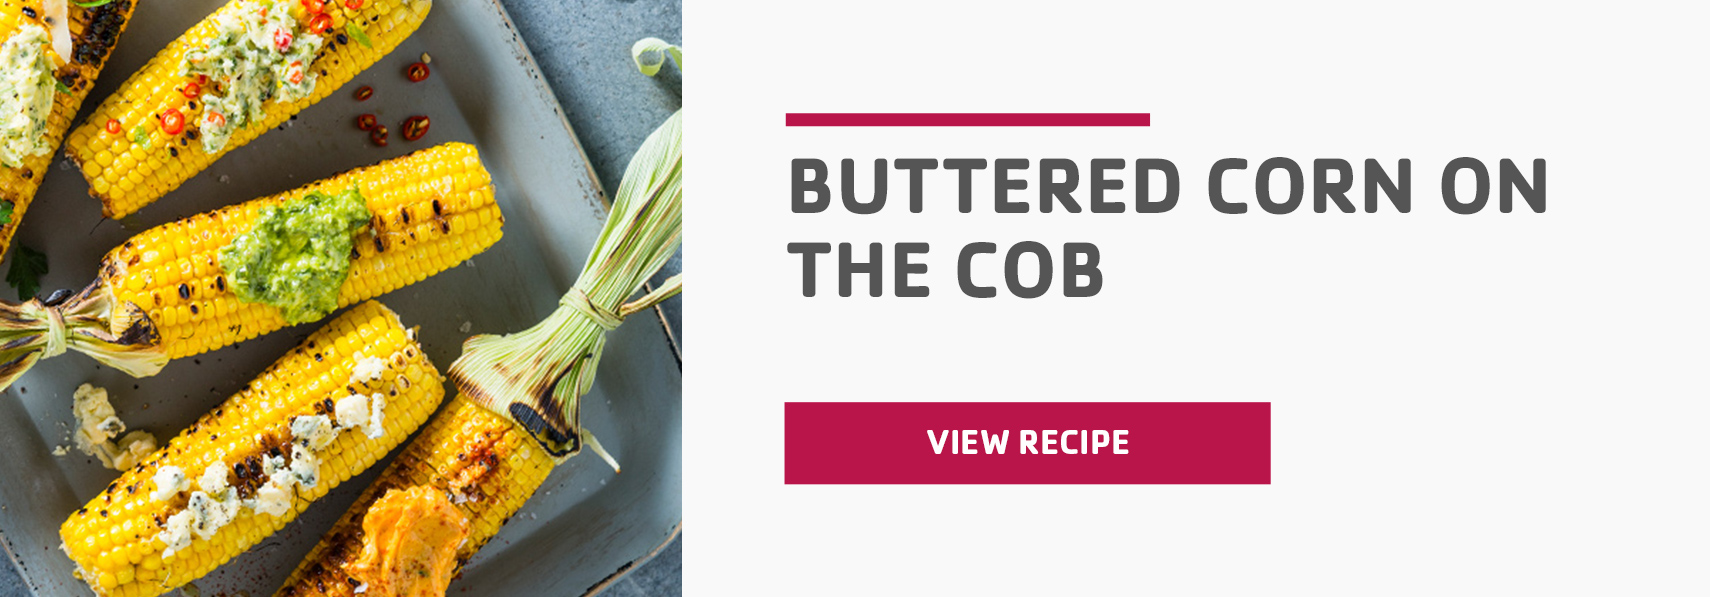 Buttered-corn-on-the-cob-listing-page-banner.jpg